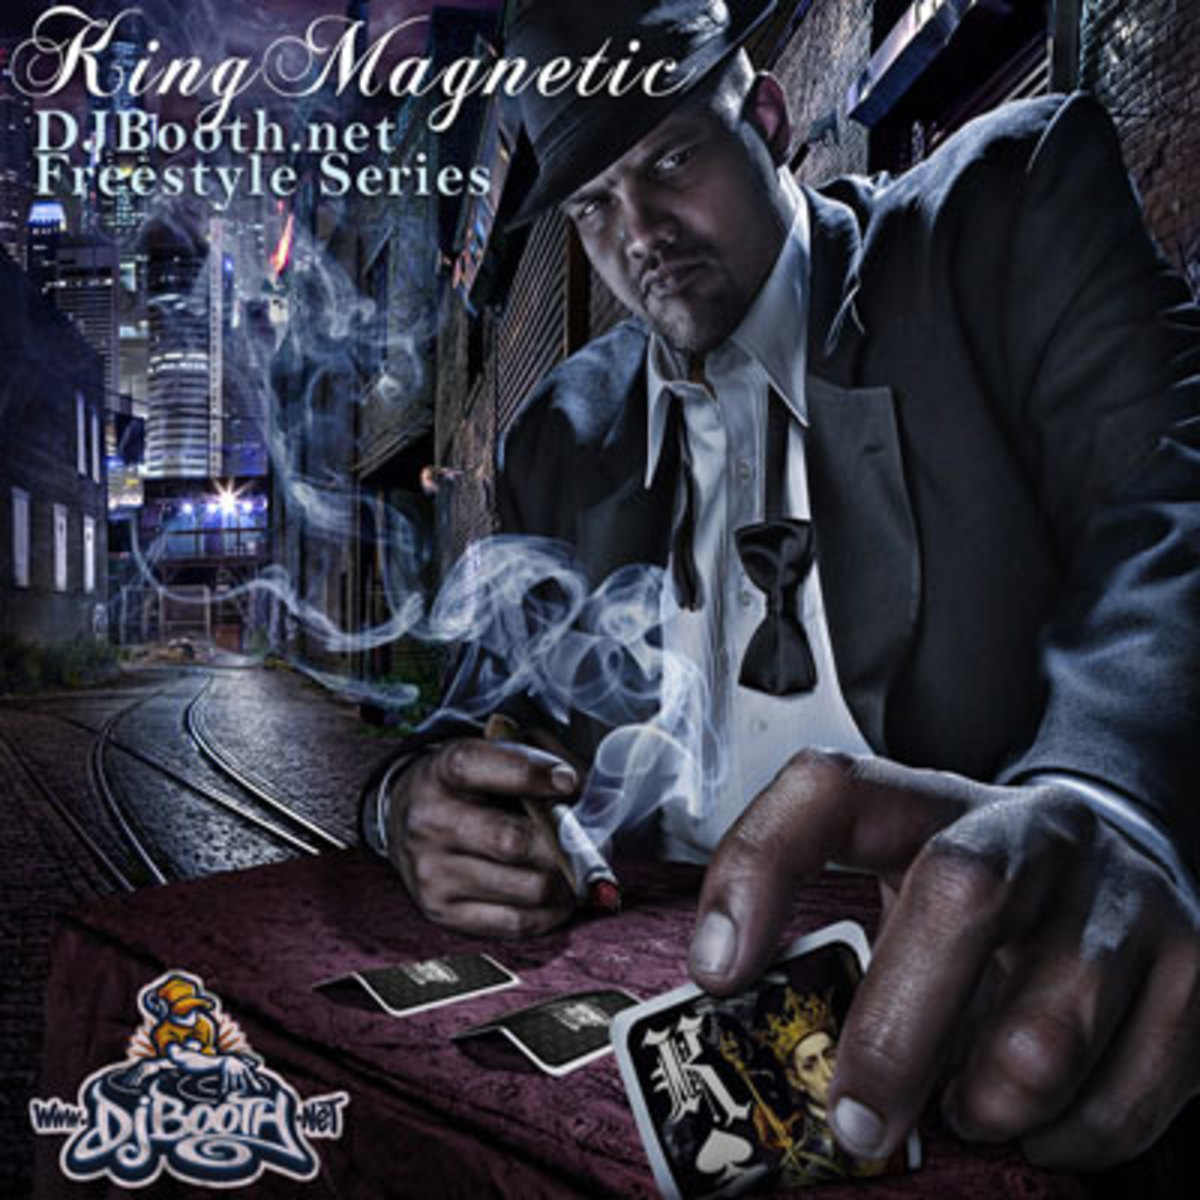 kingmagnetic-freestyle.jpg